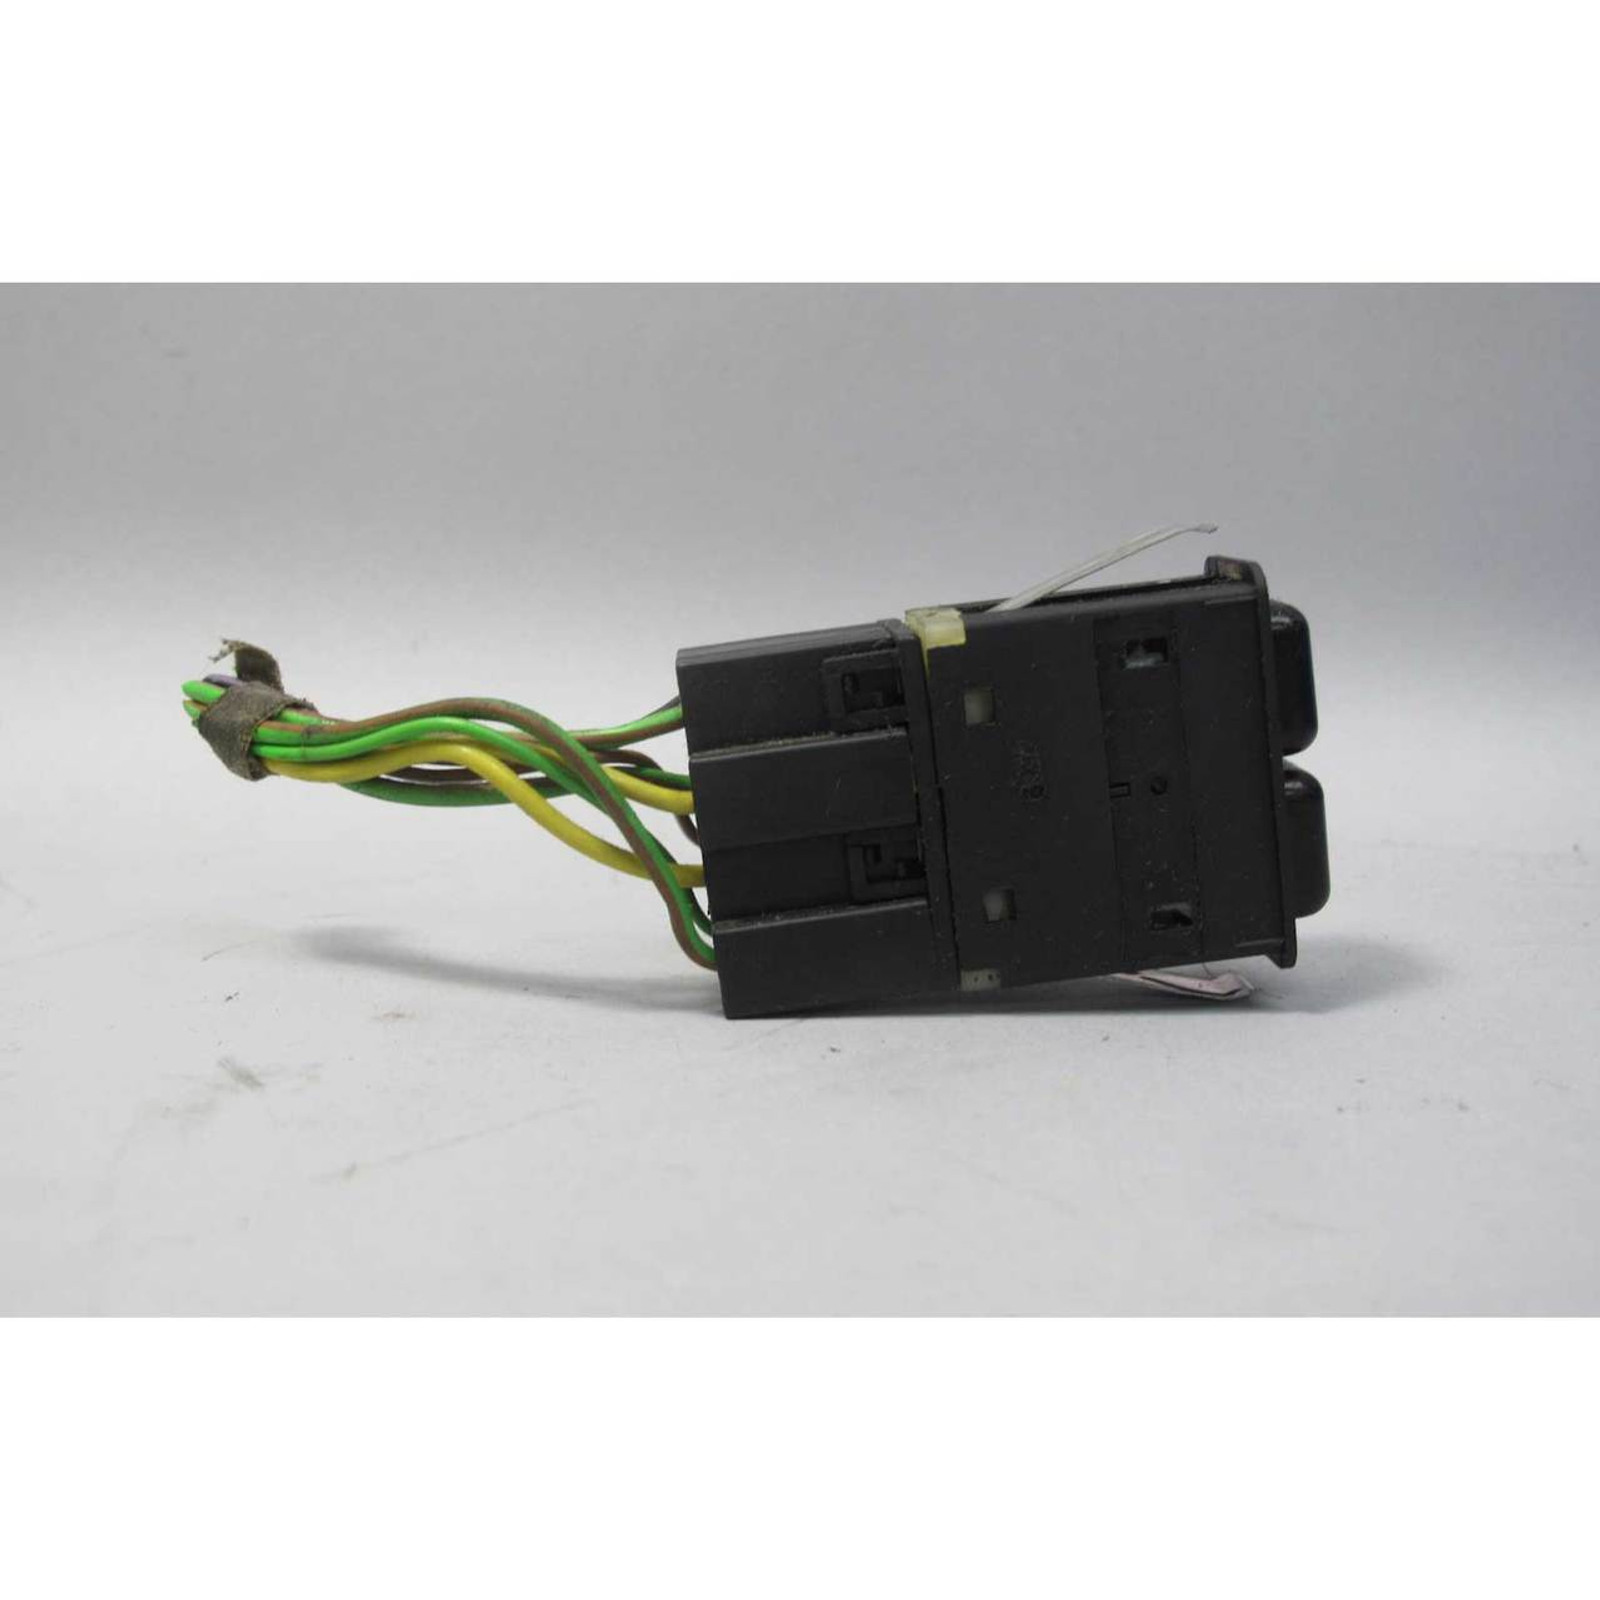 Brilliant Bmw E30 3 Series Air Conditioning And Recirculation Switch W Pigtail Wiring 101 Capemaxxcnl